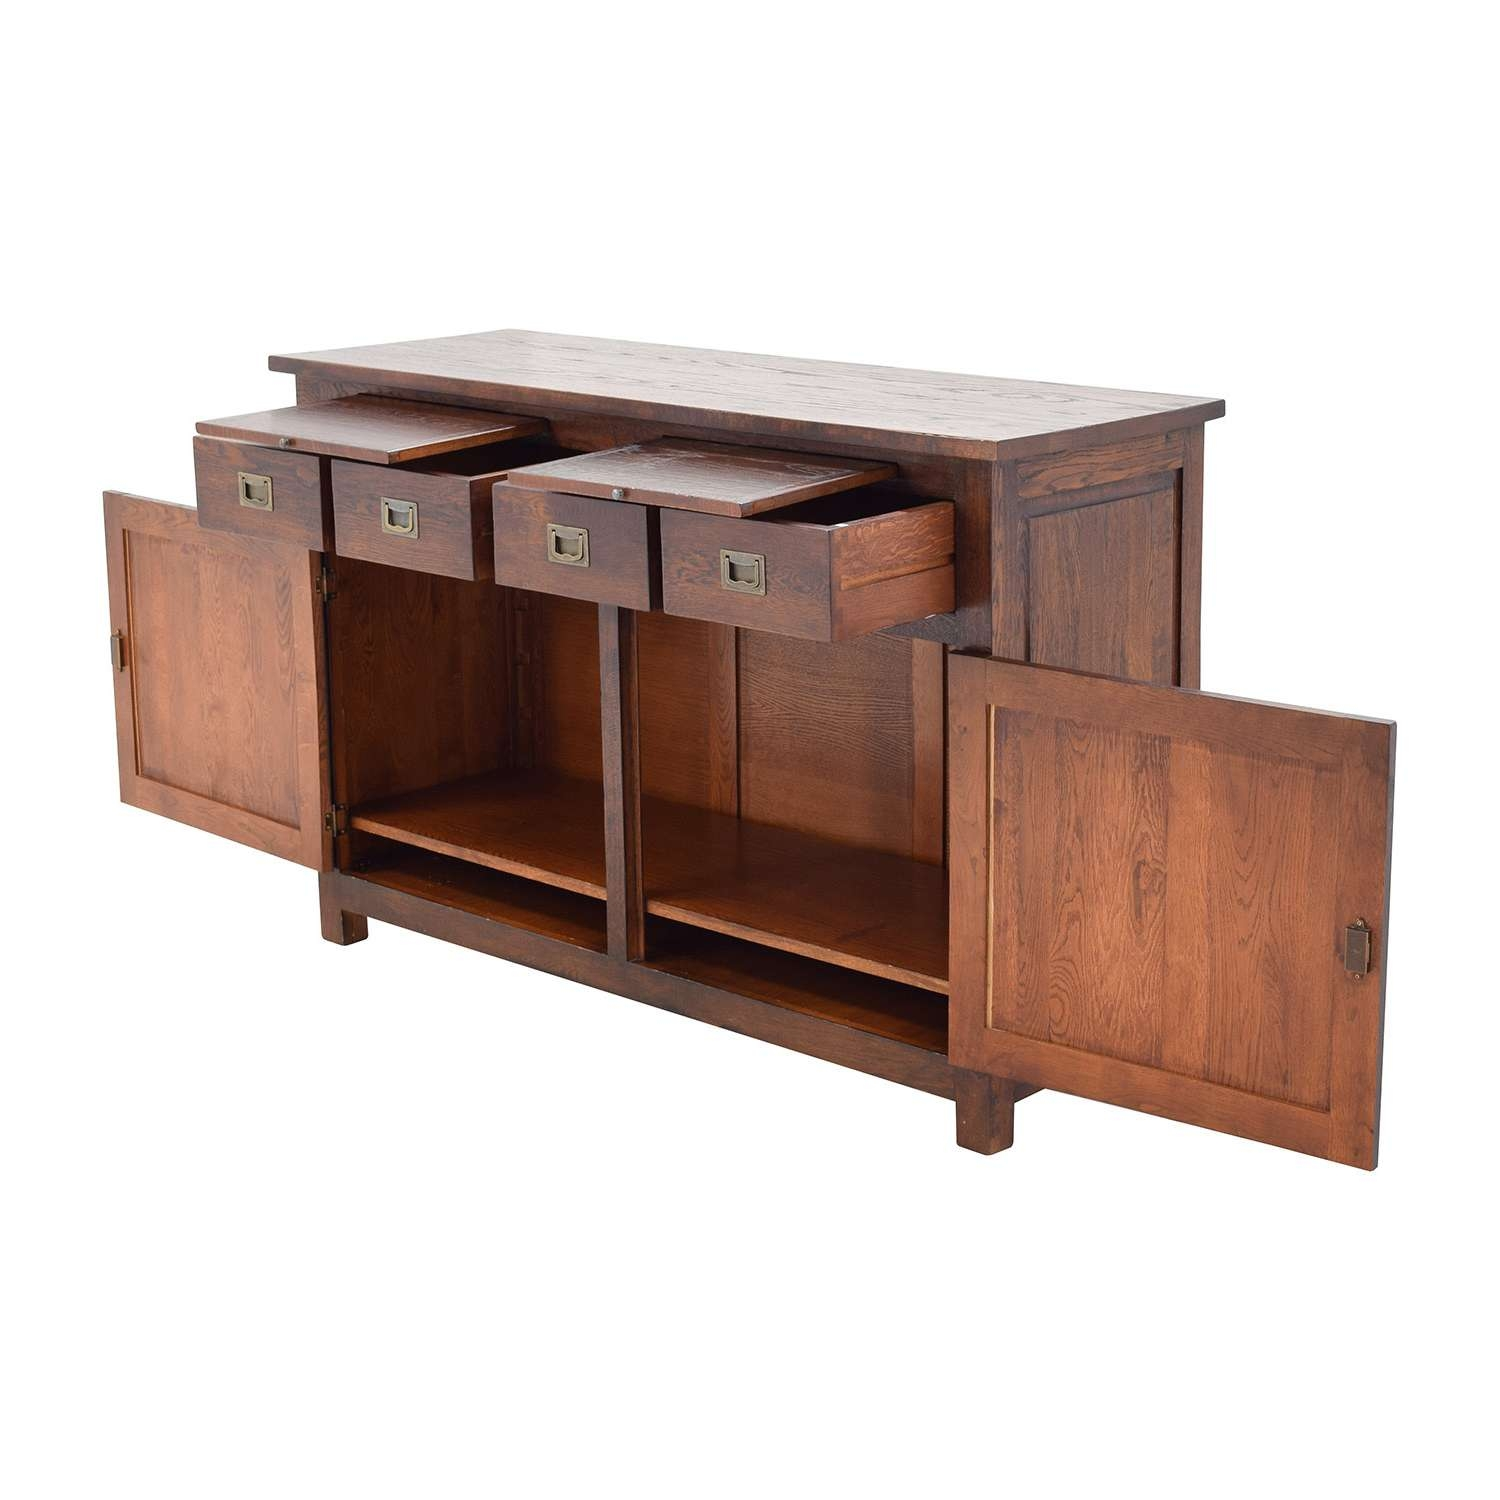 67% Off – Crate And Barrel Crate & Barrel Bordeaux Buffet Within Crate And Barrel Sideboards (View 4 of 20)